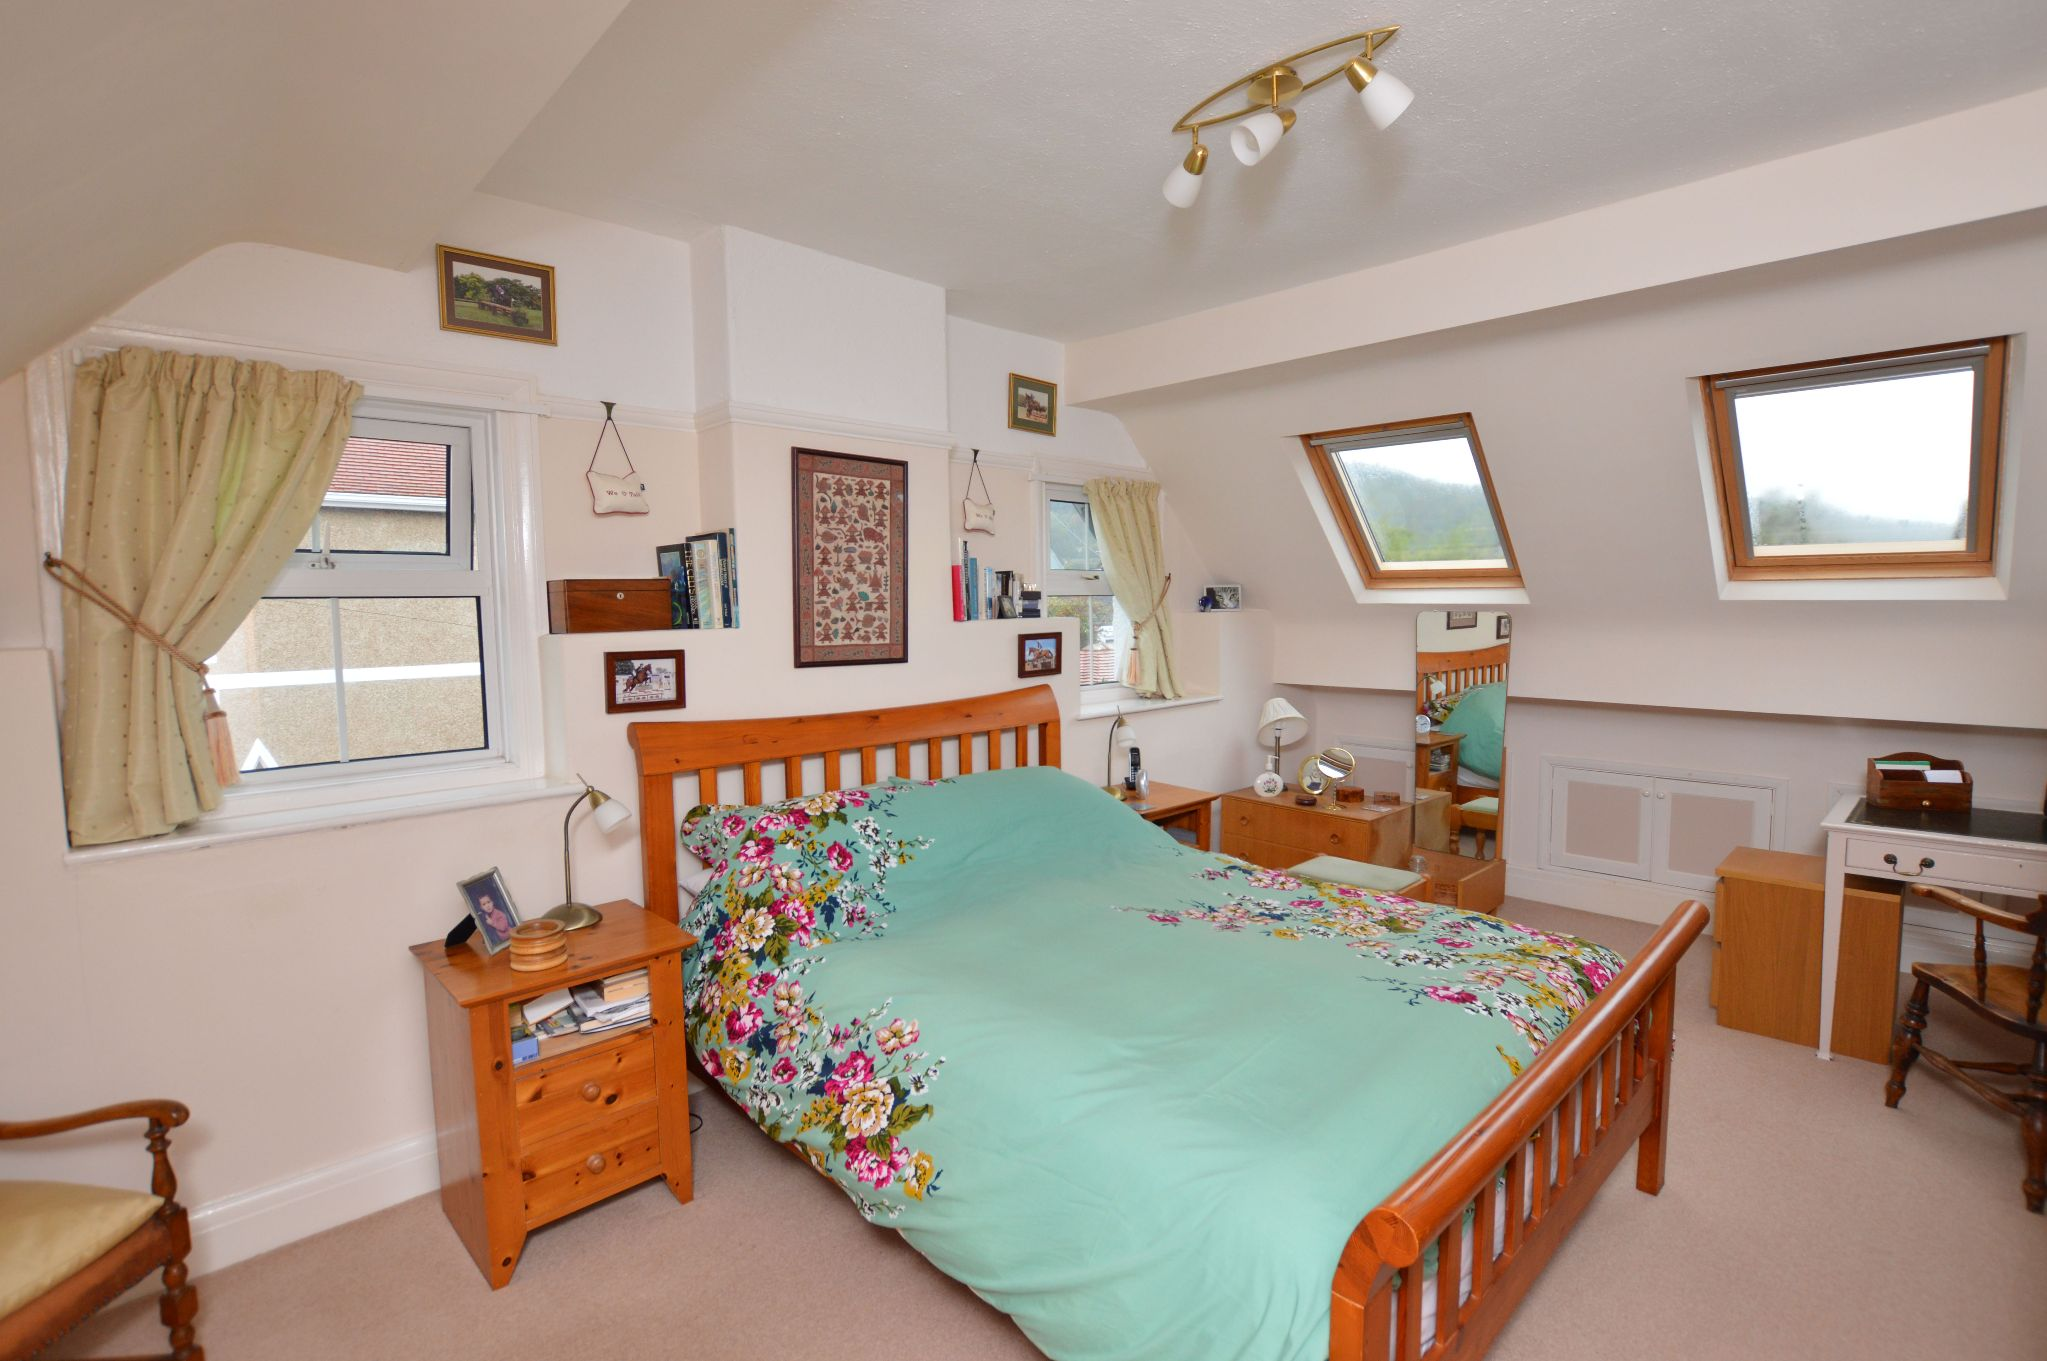 4 bedroom detached bungalow For Sale in Abergele - Bedroom 1 View 3